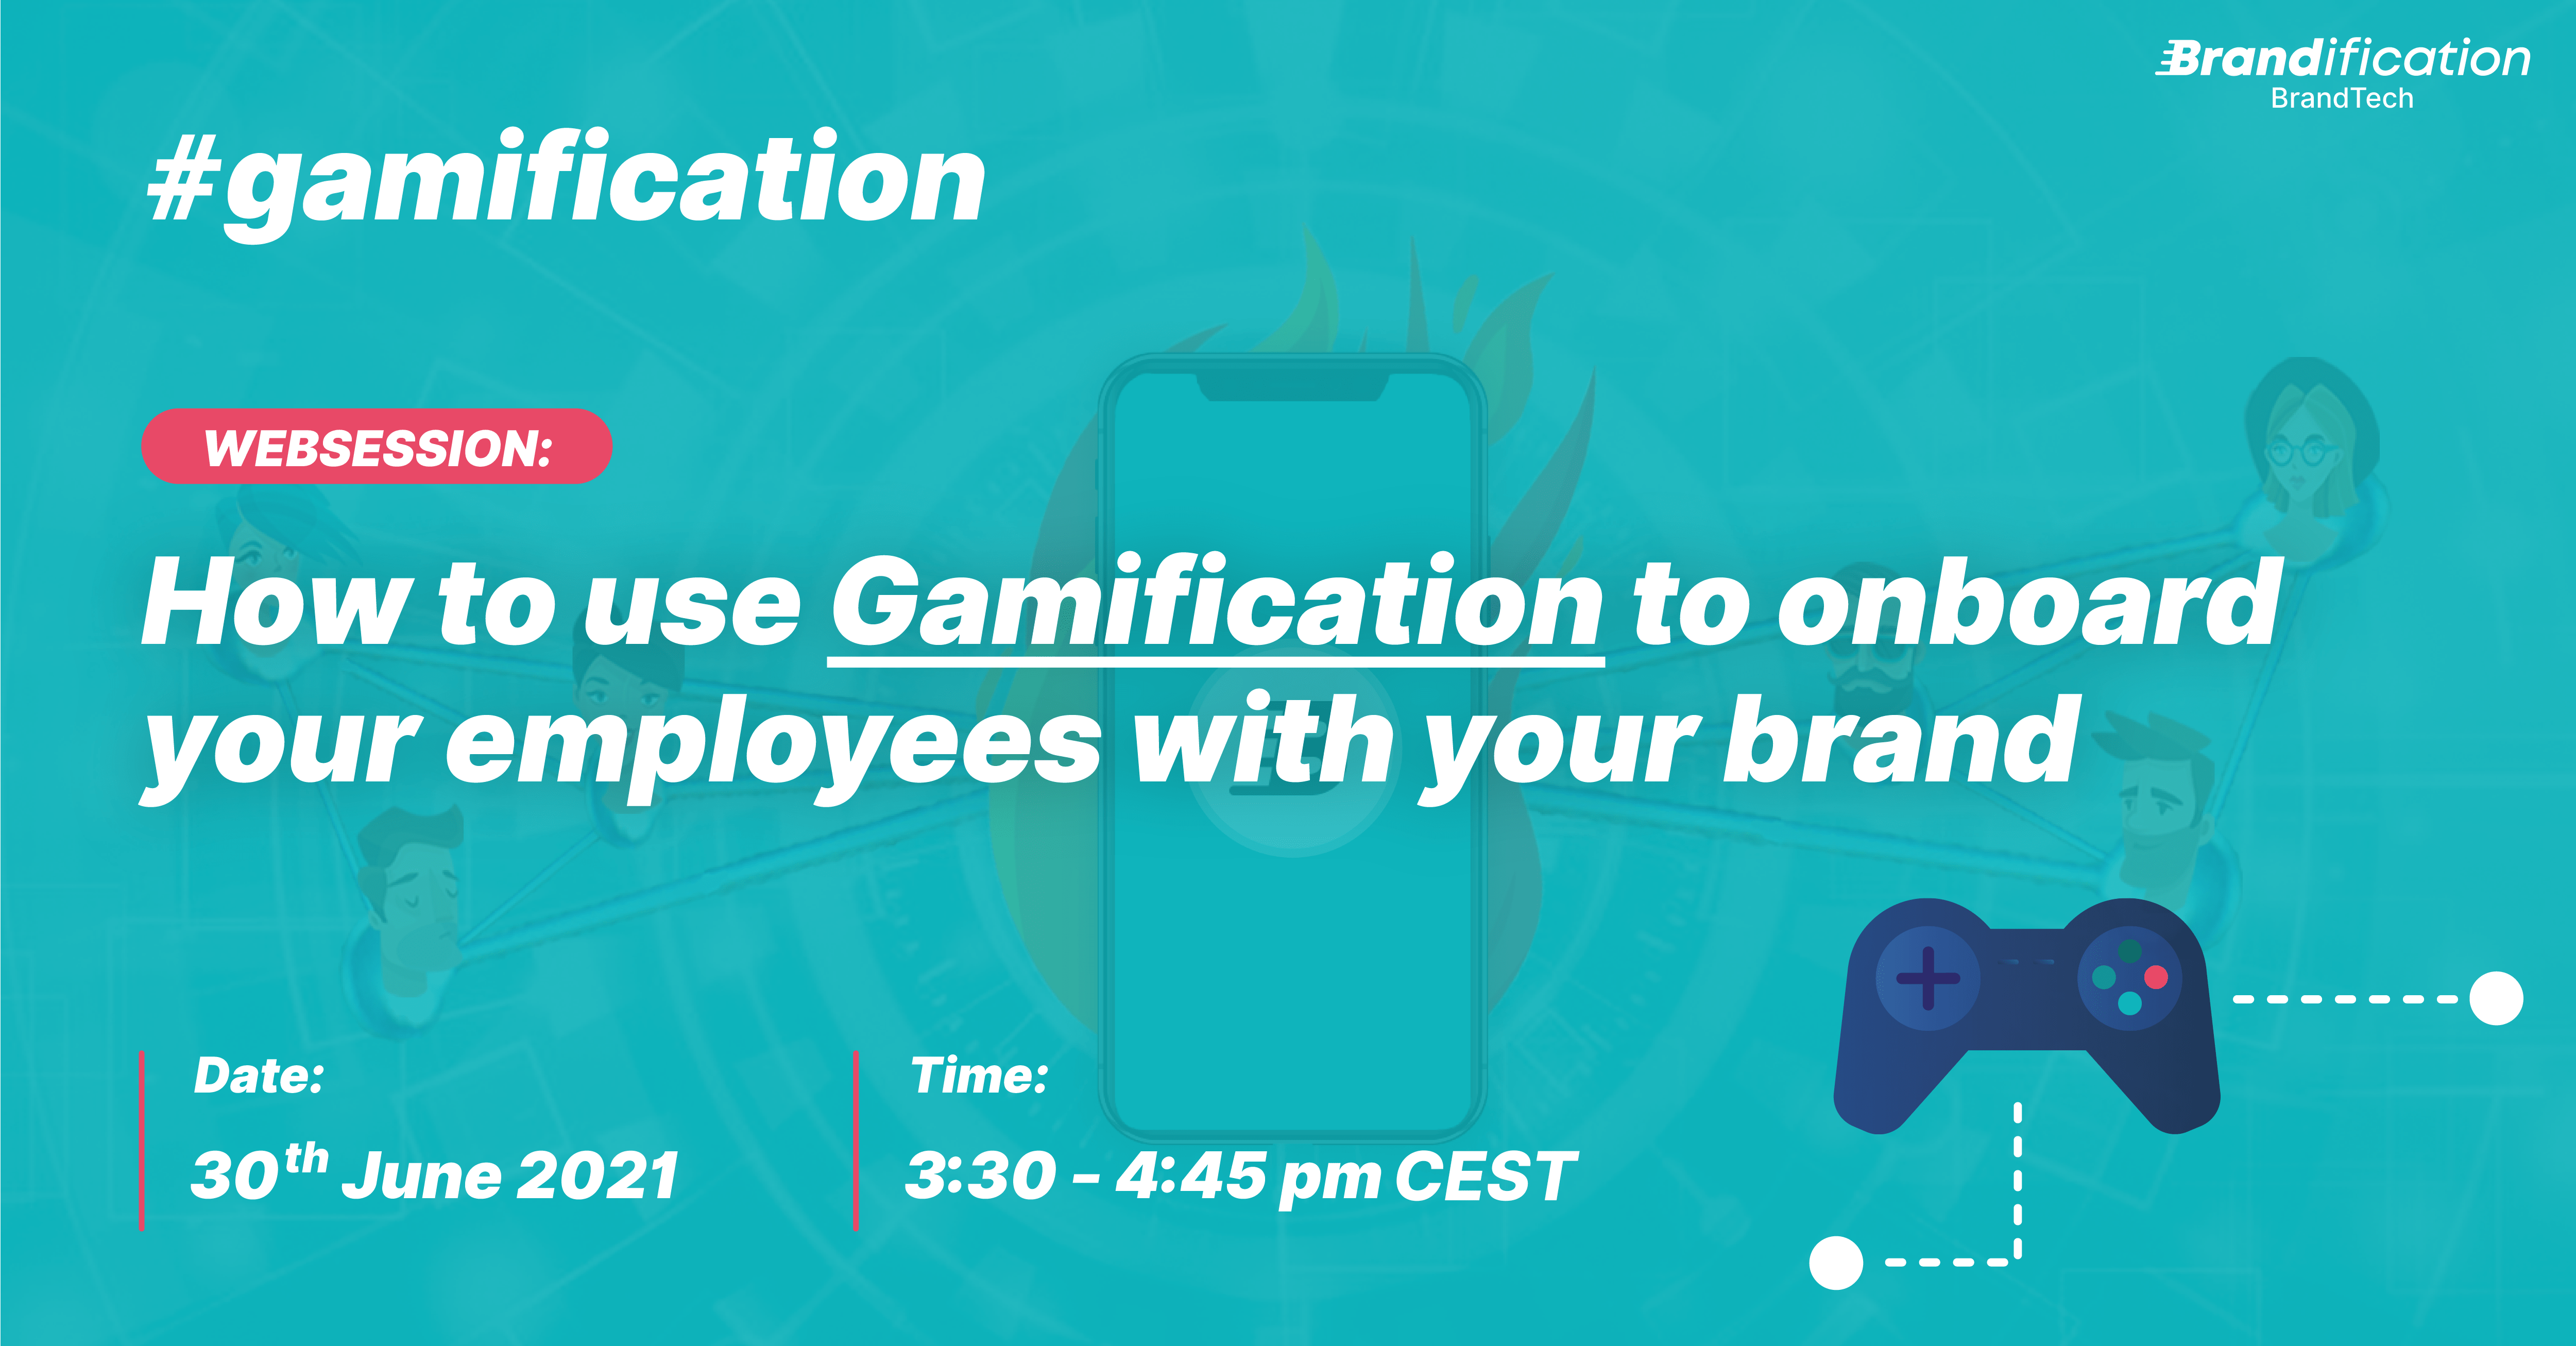 Gamification websession banner